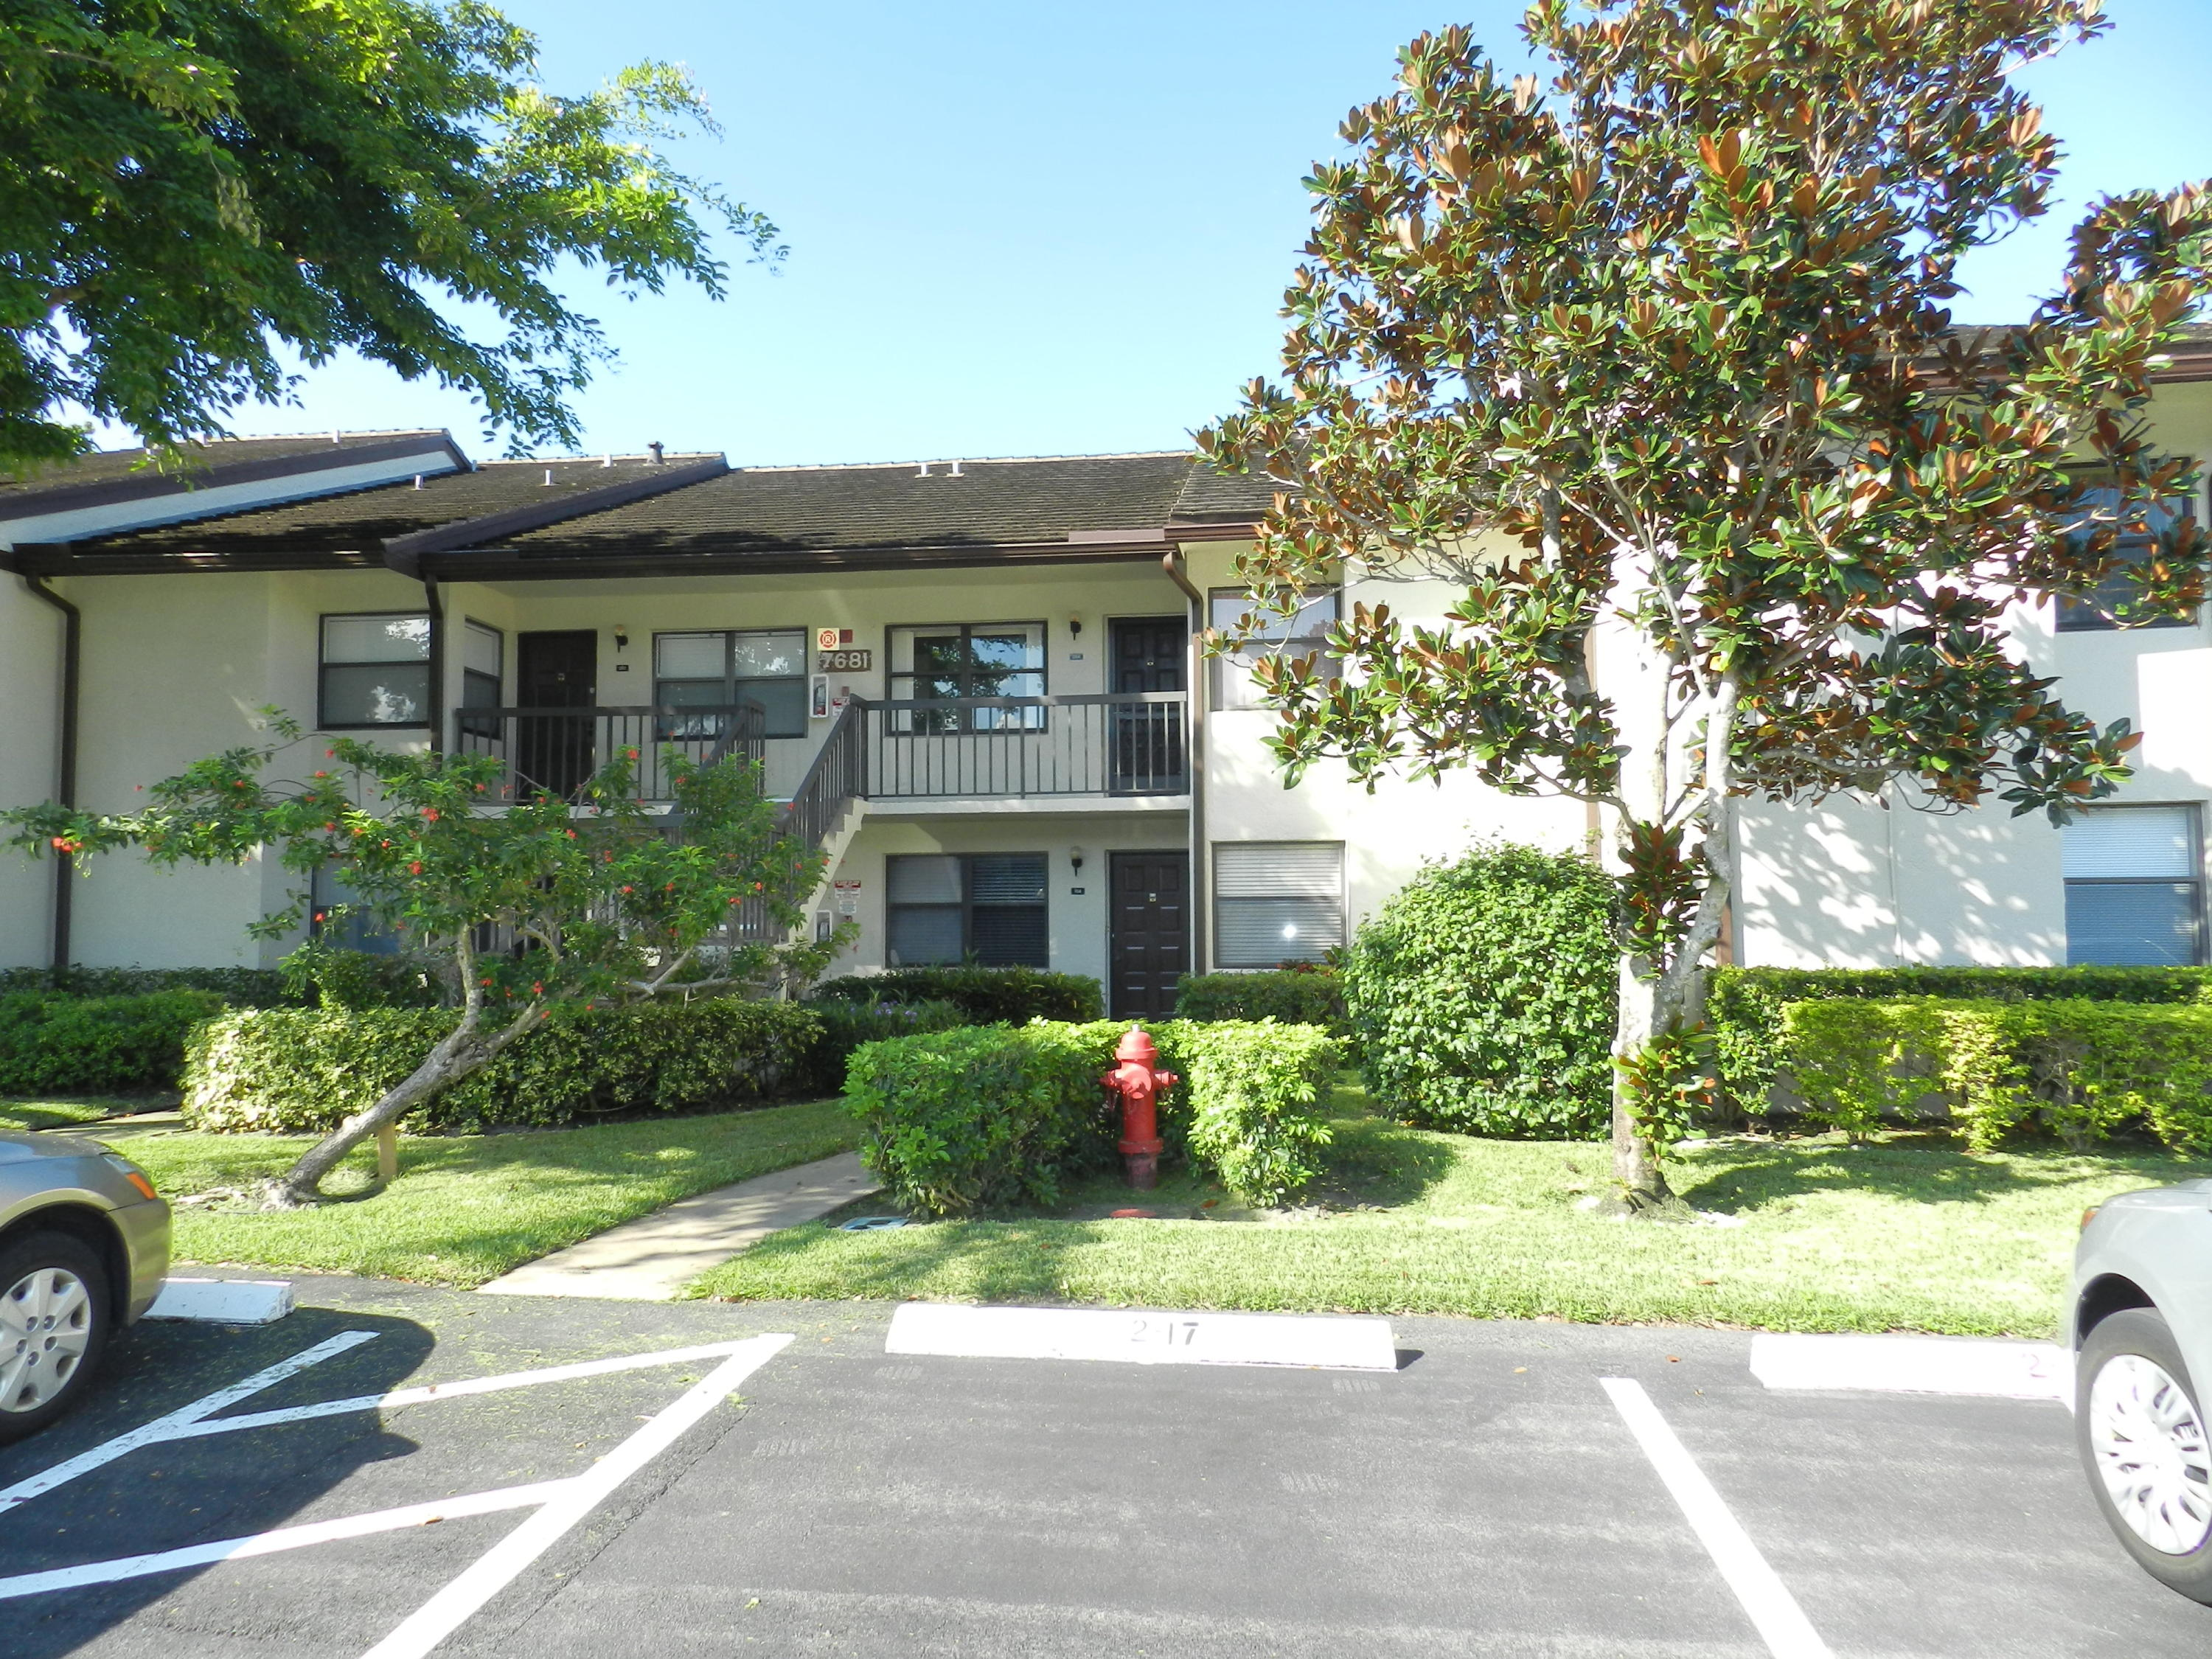 This 2 Bedroom/2 bath 1st floor condo has been loved by its owner and it shows! Once inside, you have a Living, Dining and Florida rooms that are open and spacious. The Kitchen has a pass through to the dining area and has granite counter tops and plenty of cabinet space. Now, the Master bedroom has a nice sized walk-in closet and a private screened patio. Master and second bathrooms has granite counter tops and newer vanities.  This unit also has an Utility Room with a stack able Washer/Dryer. Lucerne Lakes Amenities includes a Clubhouse, pool, bus service and golf. Now, this is a non equity community and is close to shopping, dining and the turnpike. Hurry, before this gem of a unit gets away! Can be unfurnished or partially furnished.